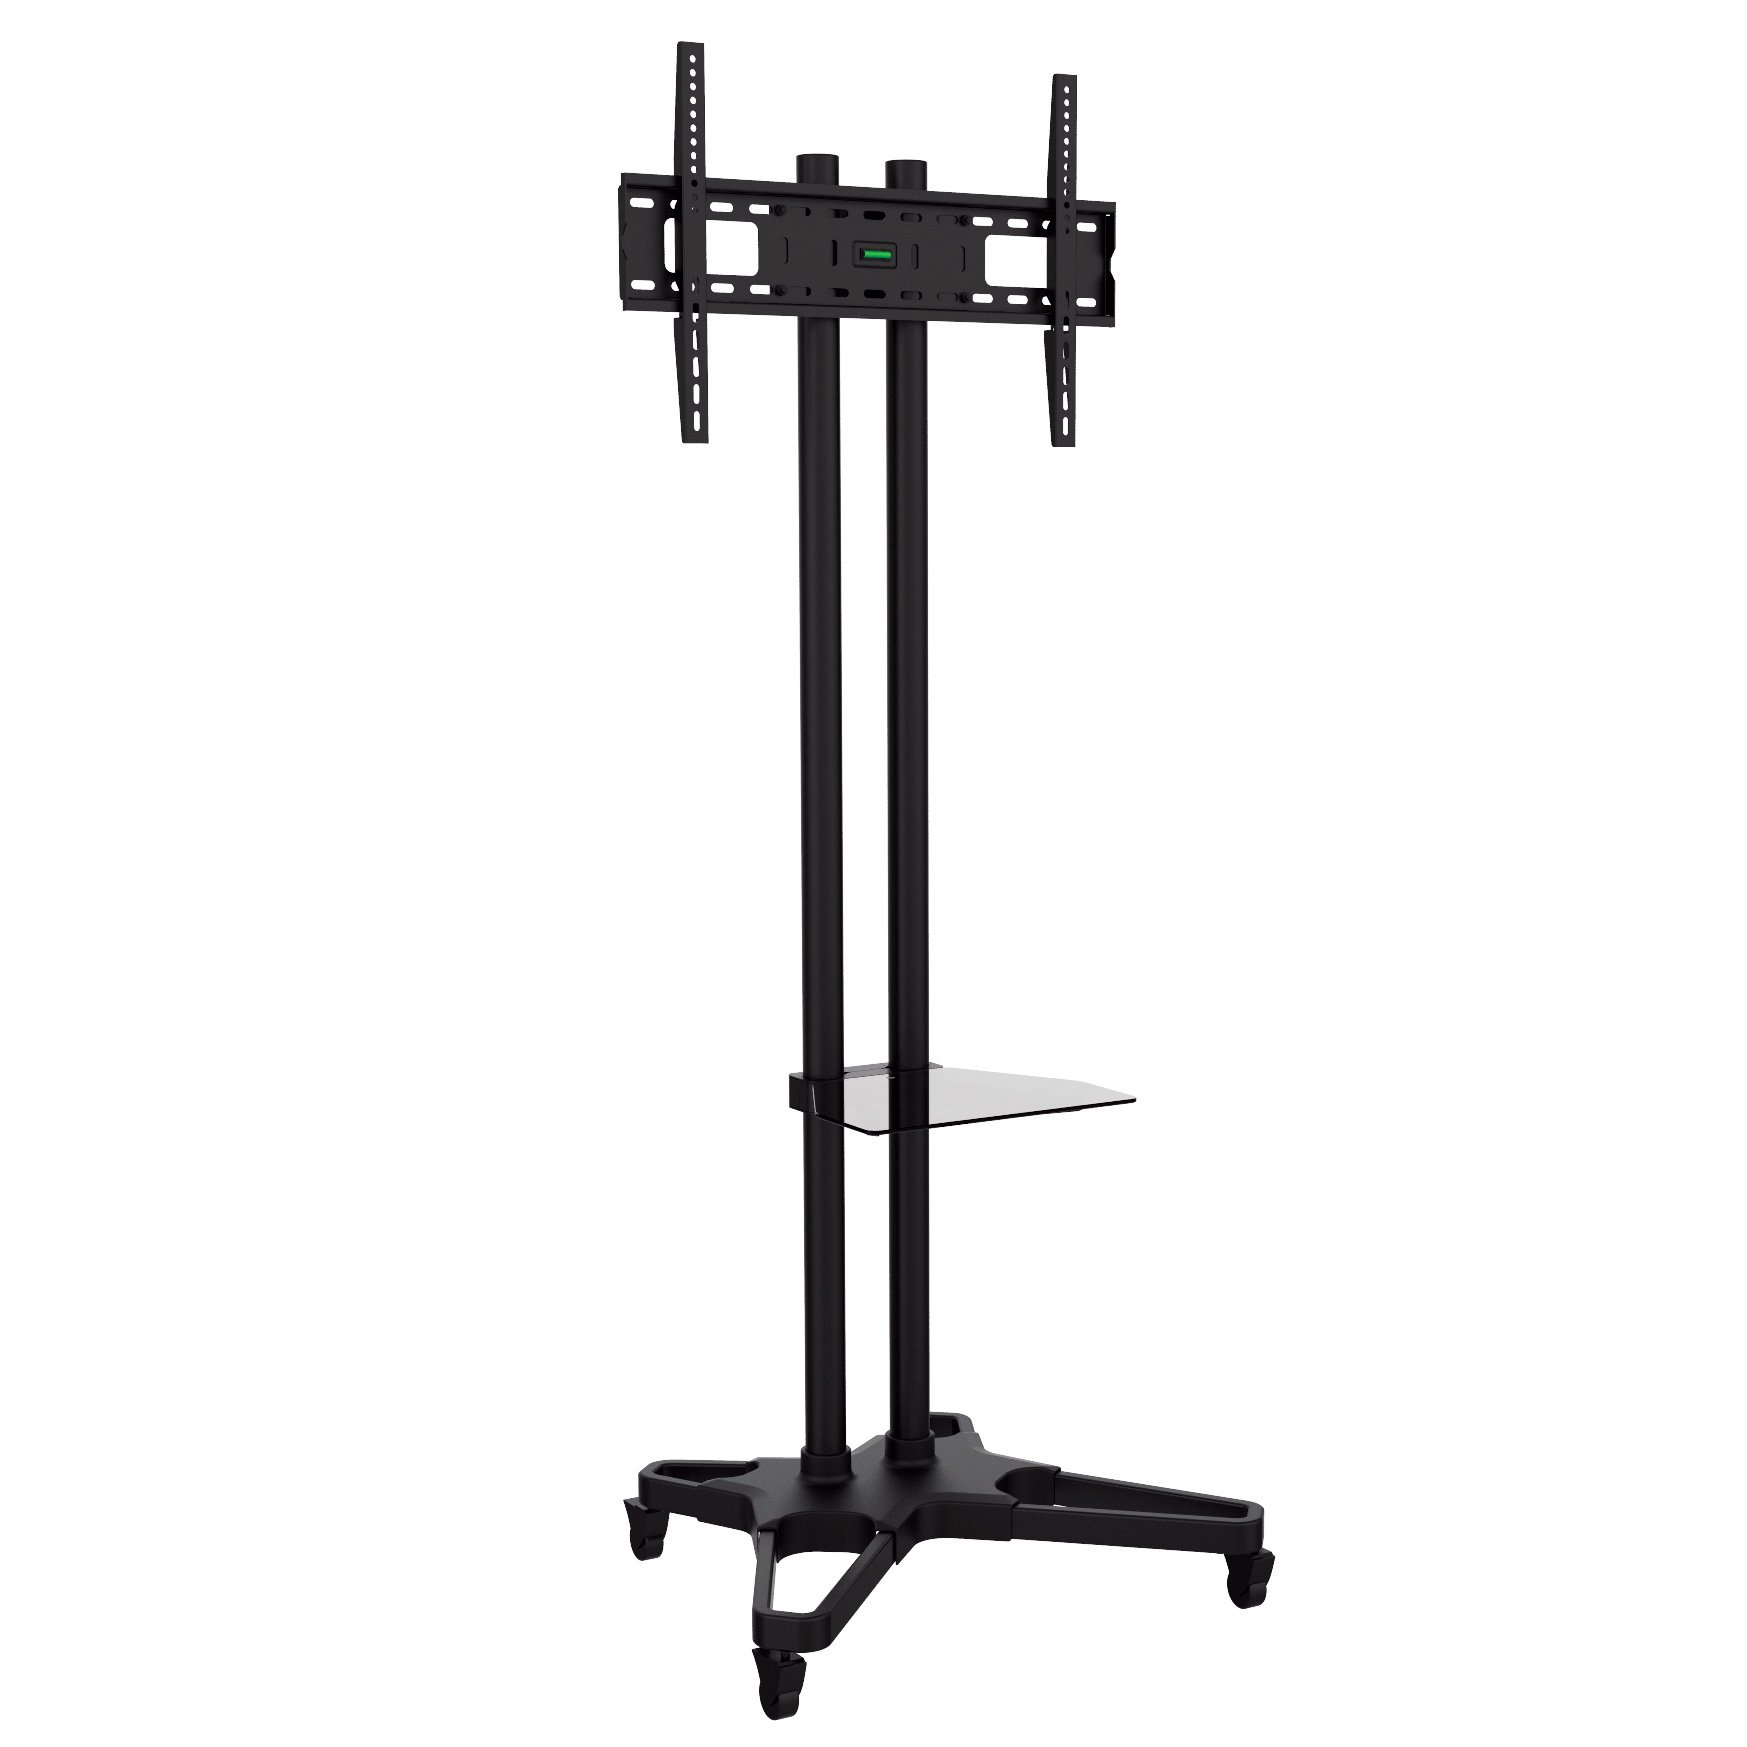 Bentley Mounts CMS 1021B Height Adjustable Mobile TV Stand   37 To 70 Inch.  Zoom